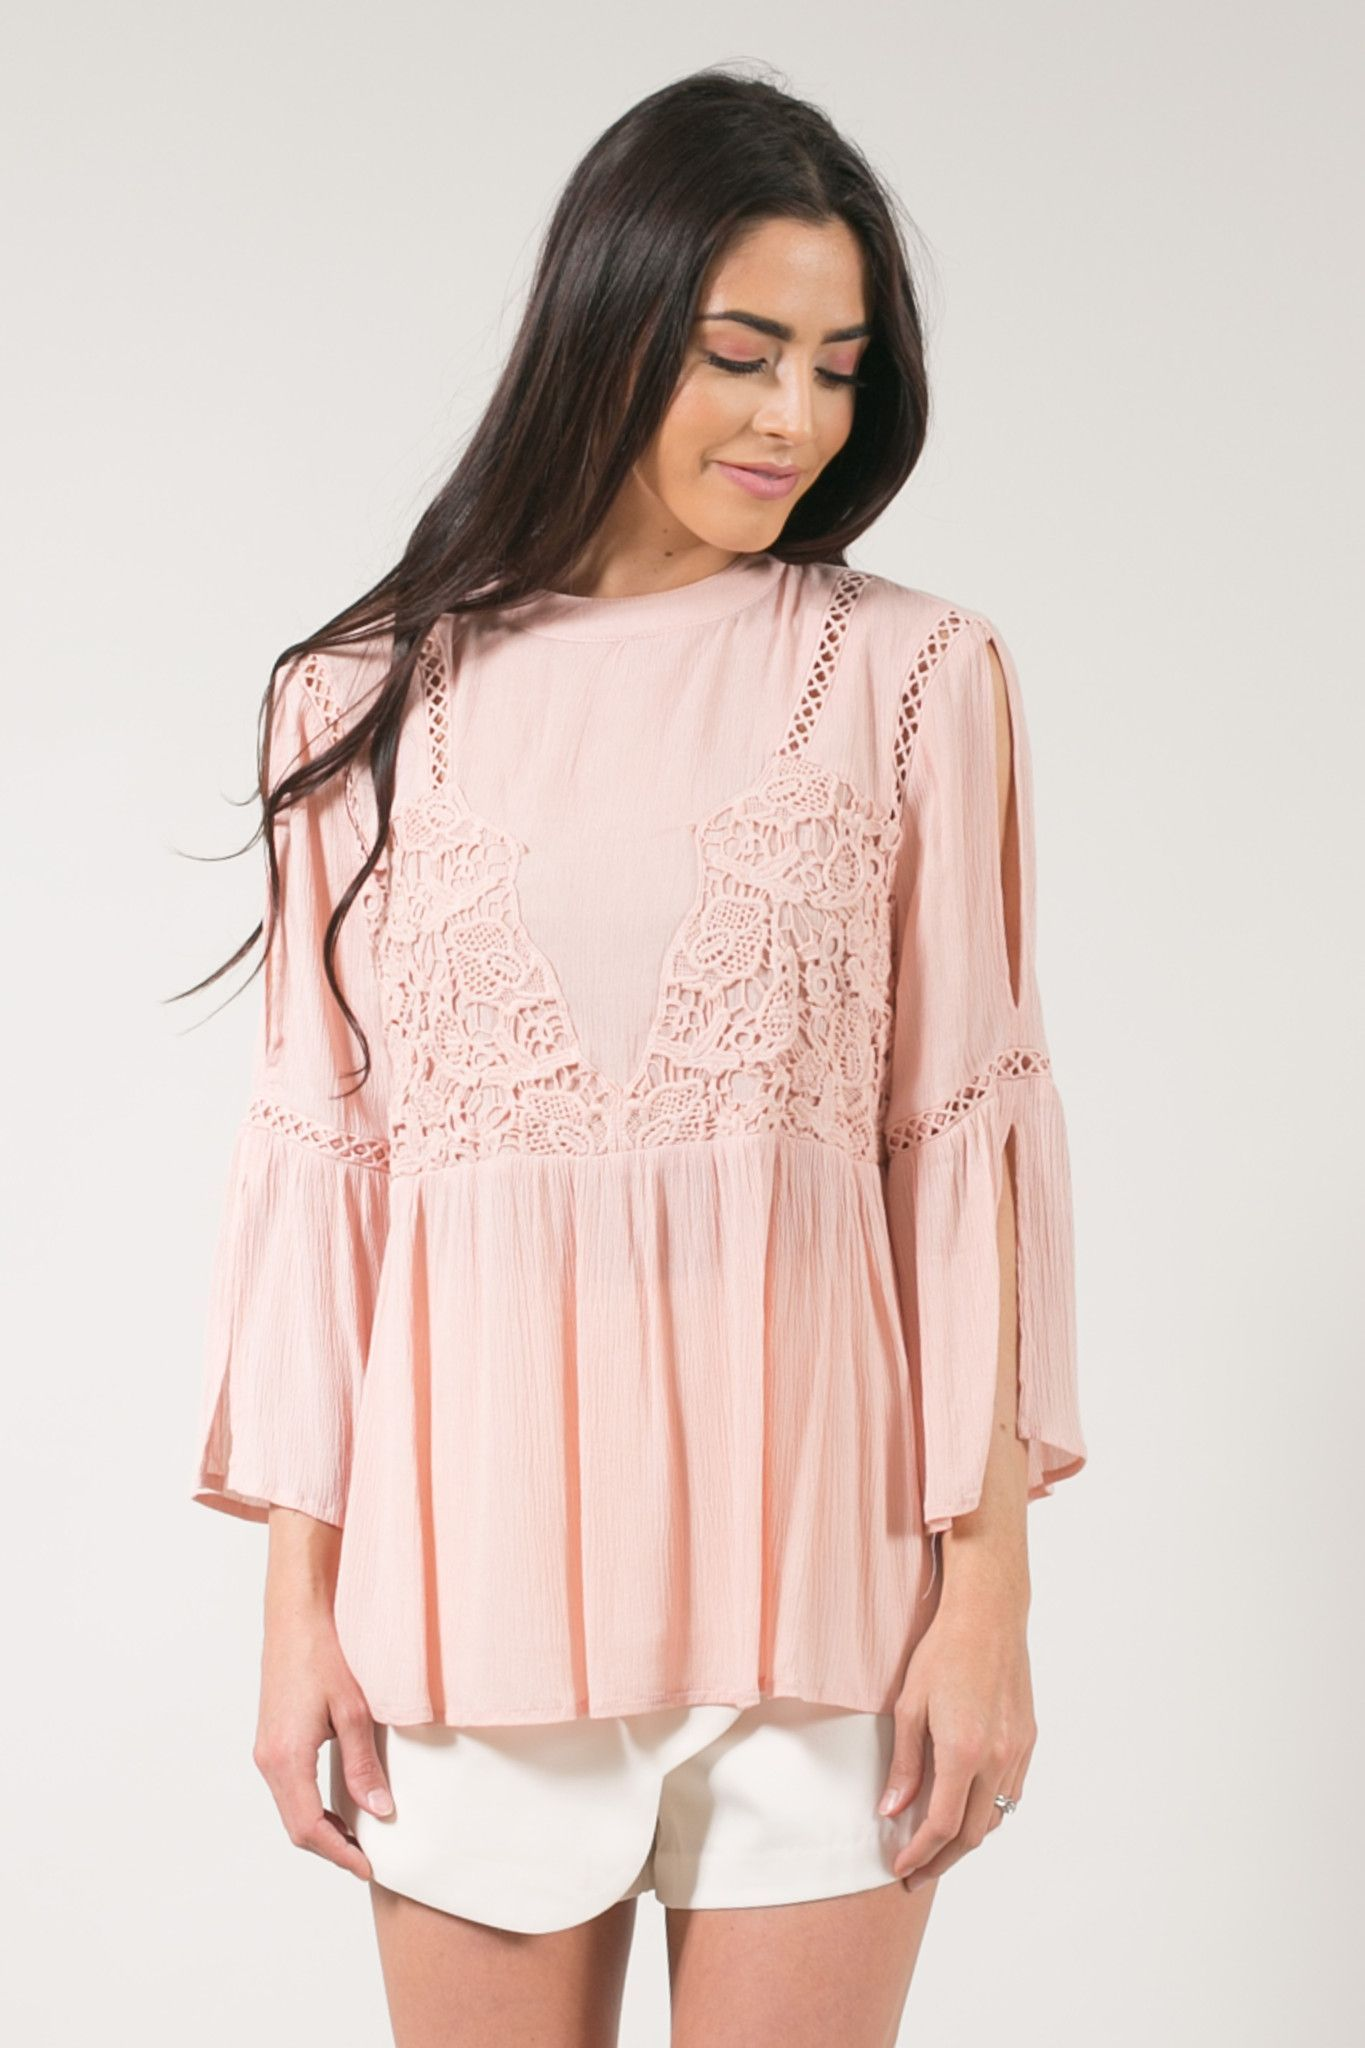 Image result for blush embroidered flowy top